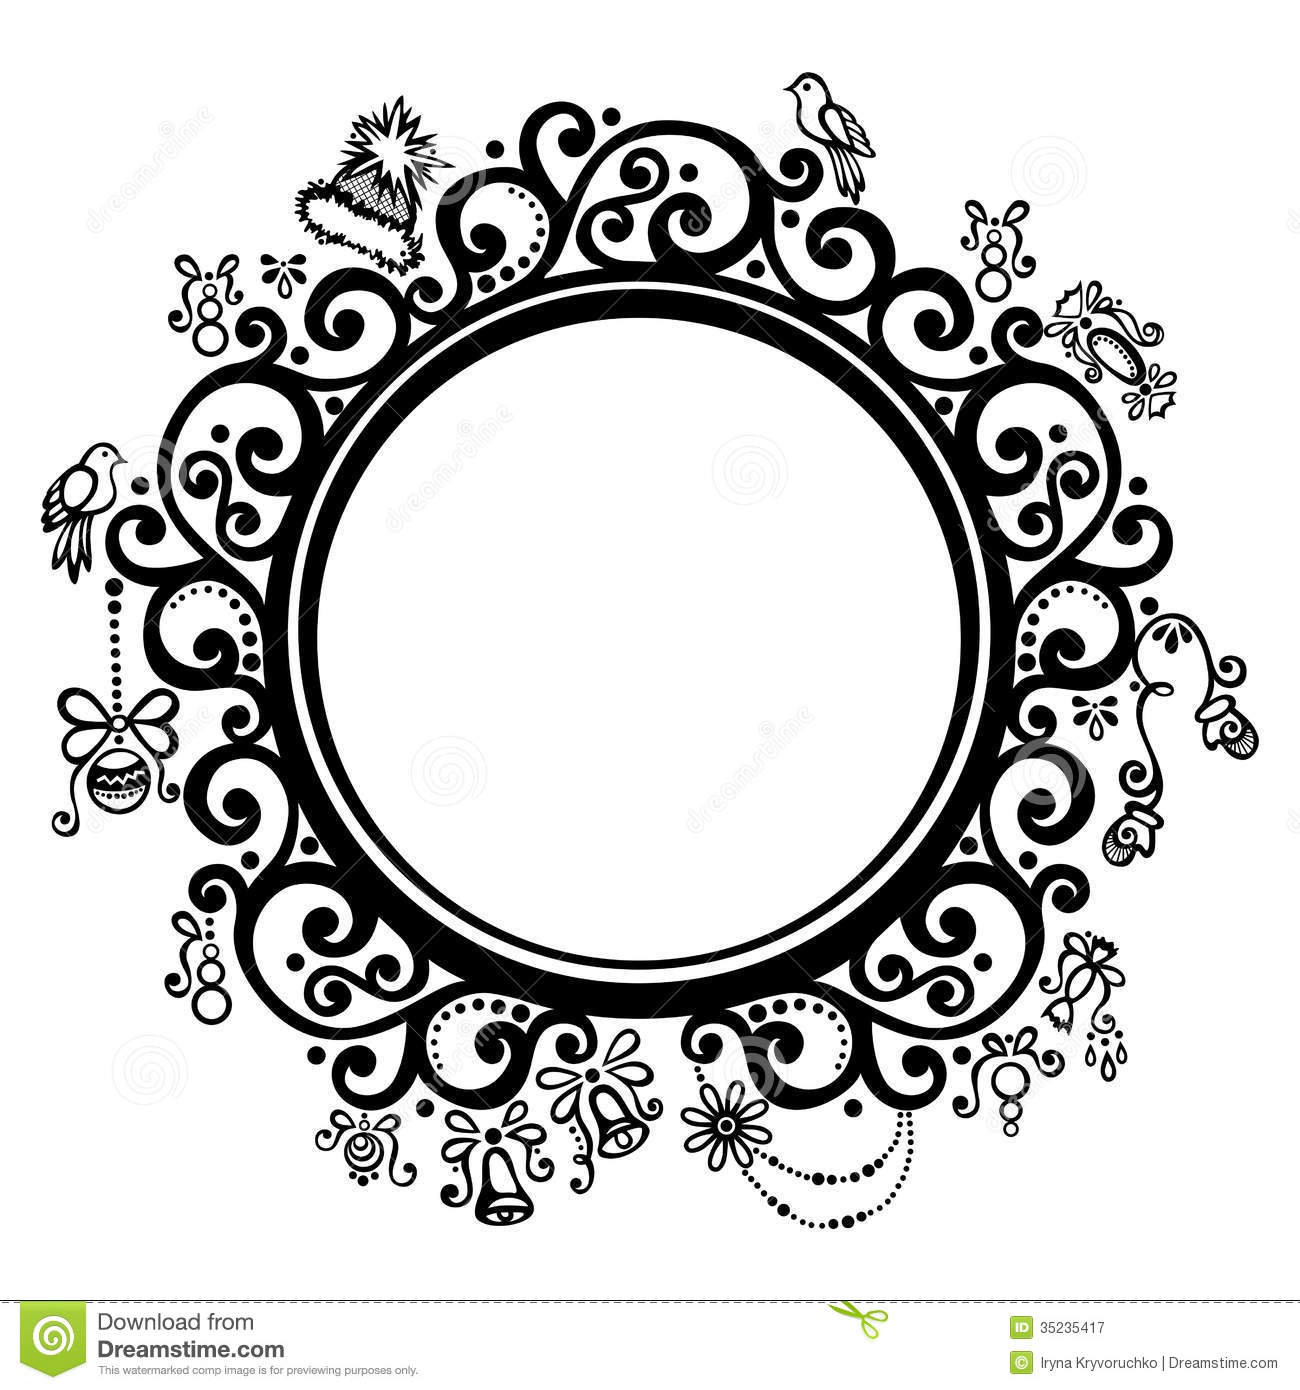 Round design clipart 1 » Clipart Station.